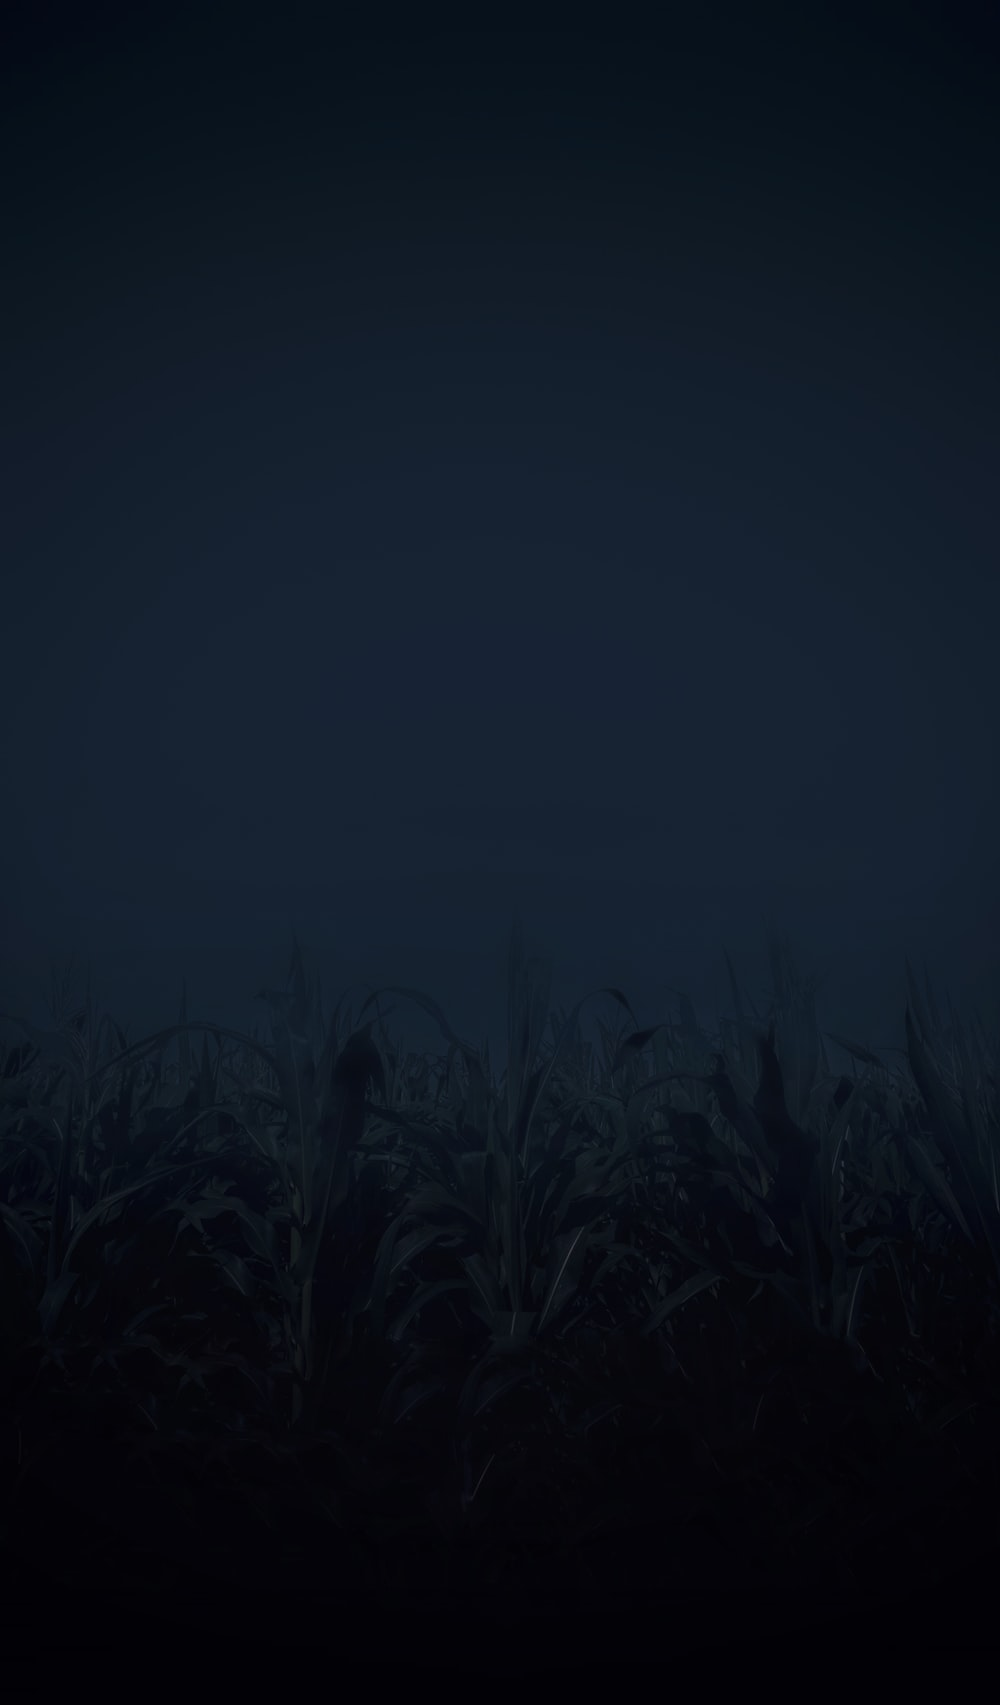 green grass field during night time